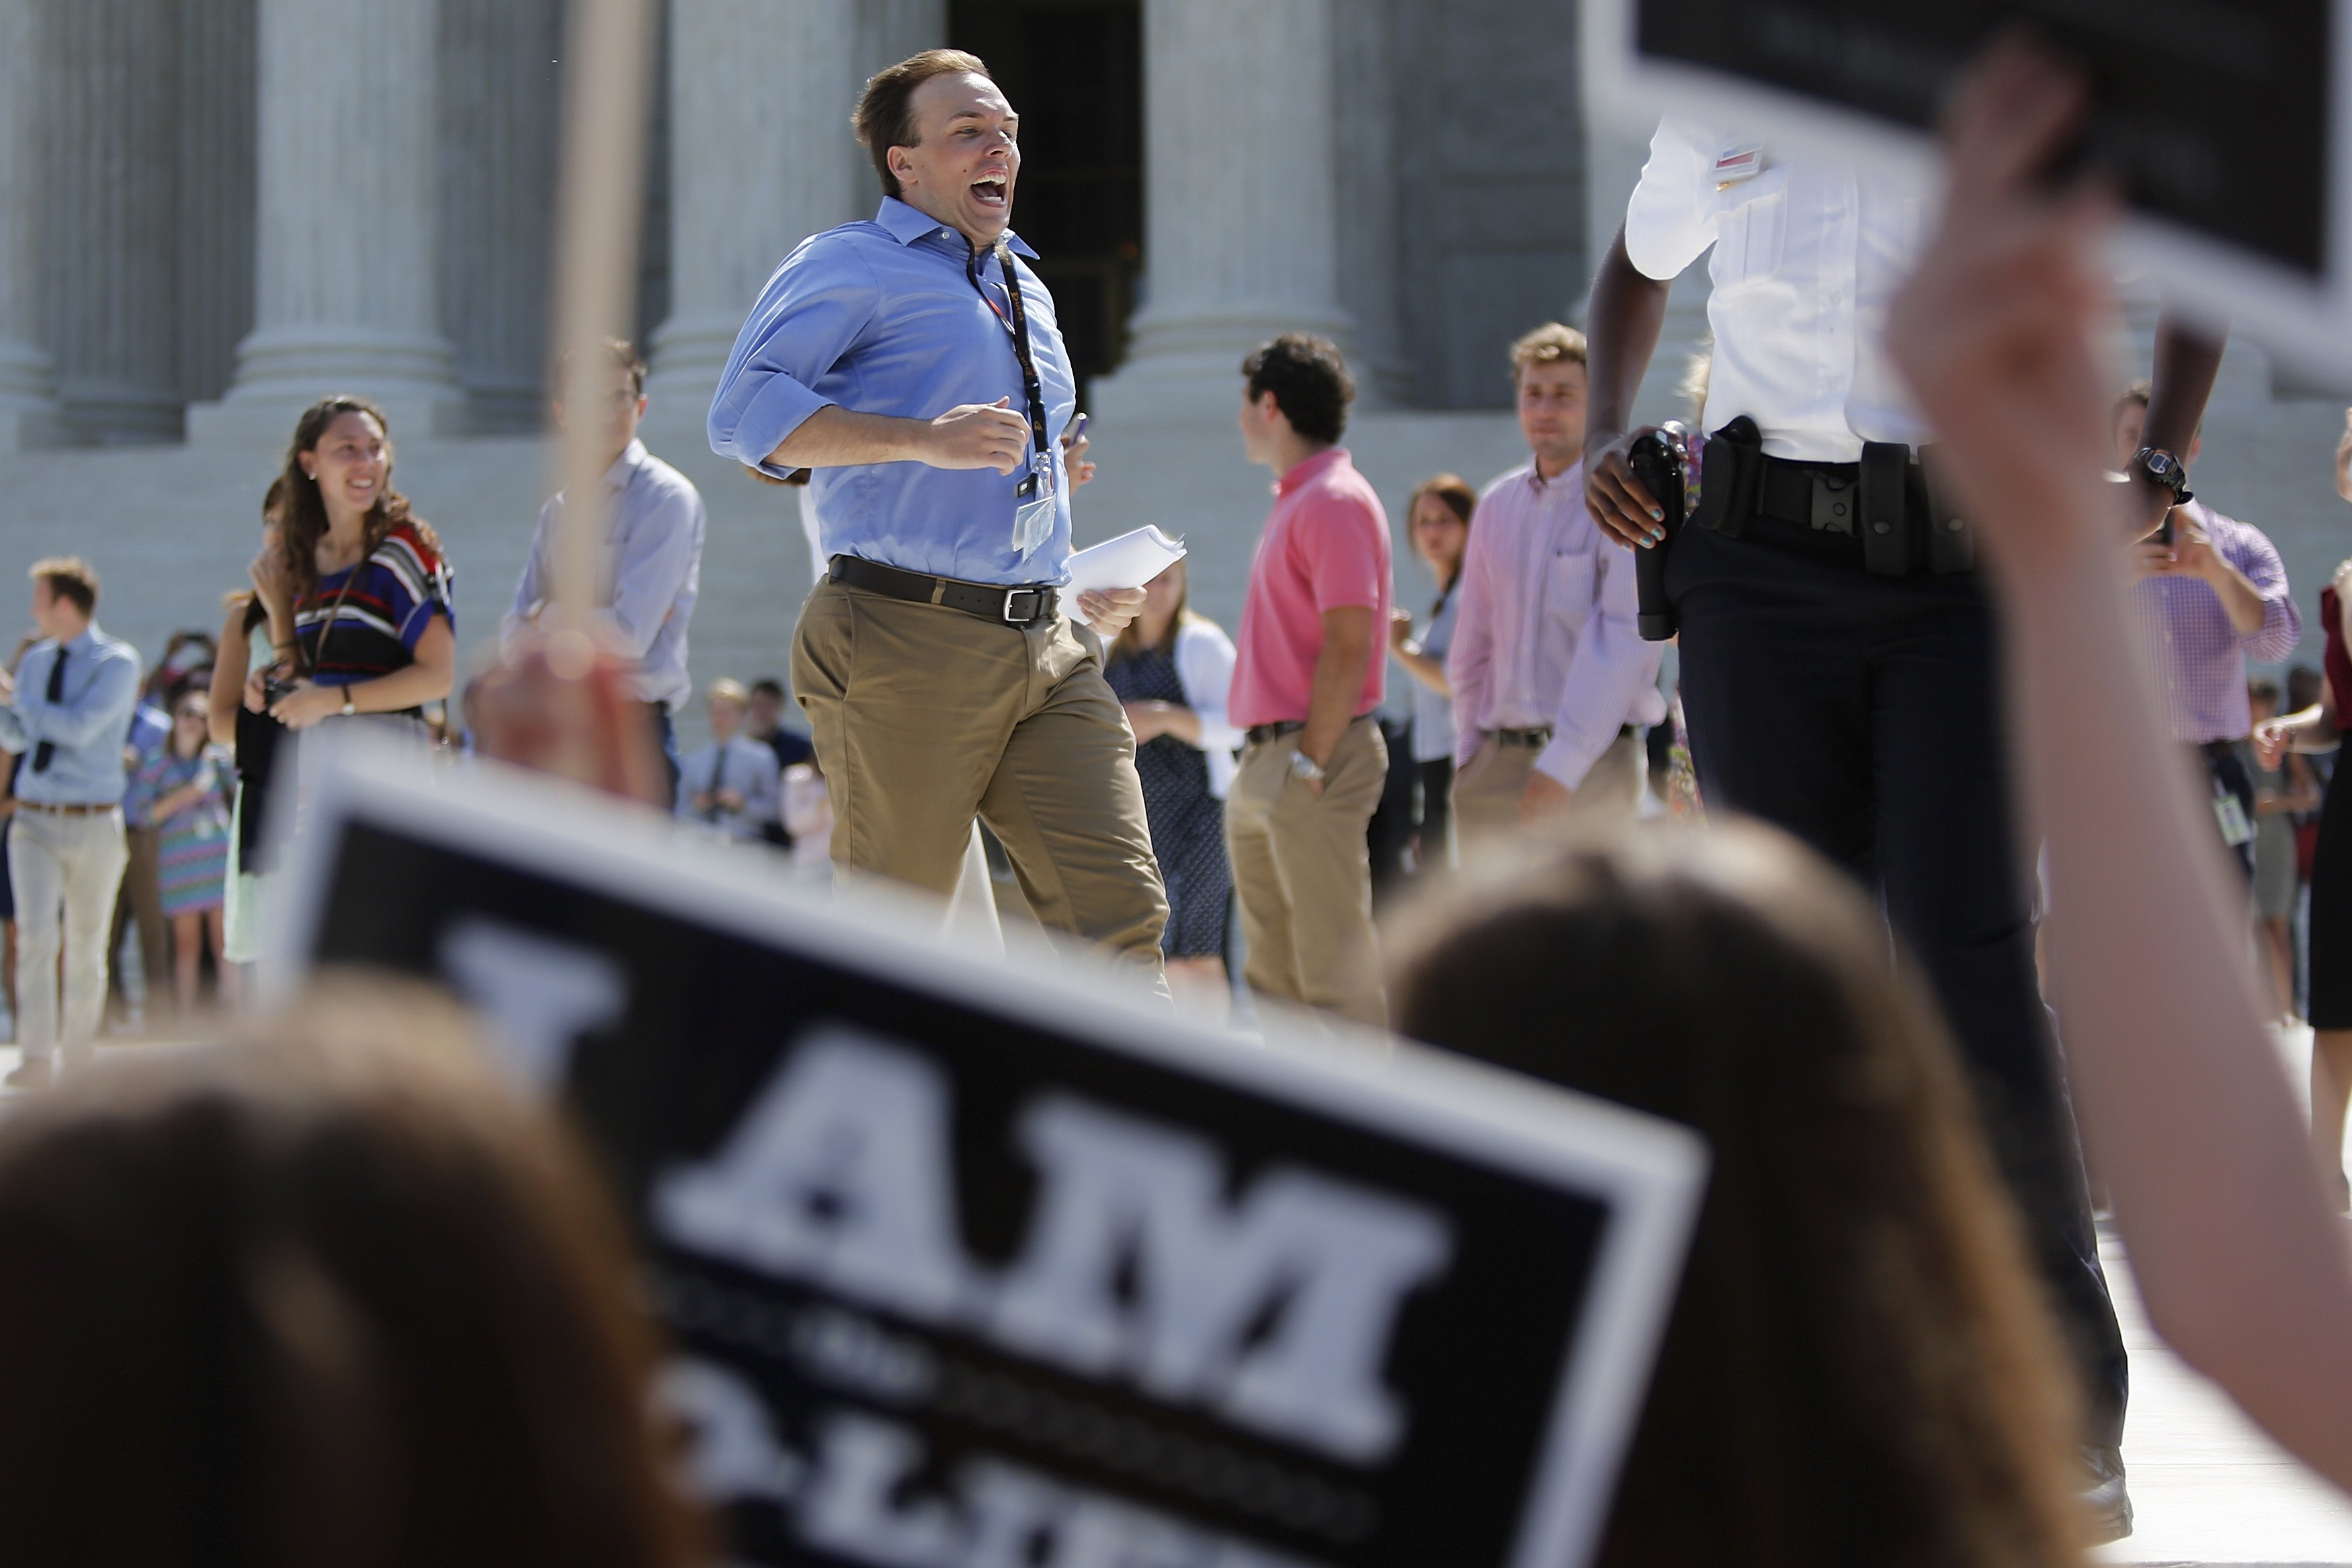 Reporters run from the courthouse with paper copies of the U.S. Supreme Court decision for the Hobby Lobby, in Washington